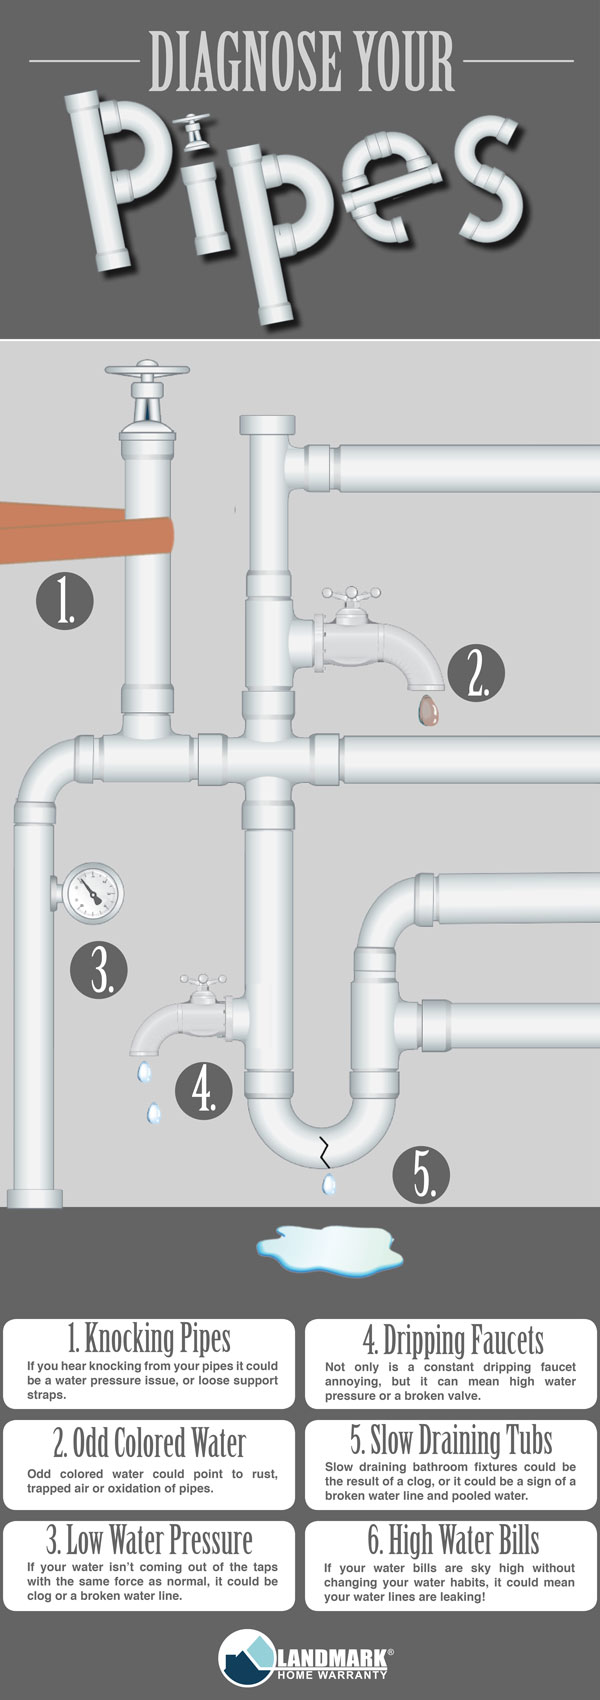 diagnose your plumbing problems